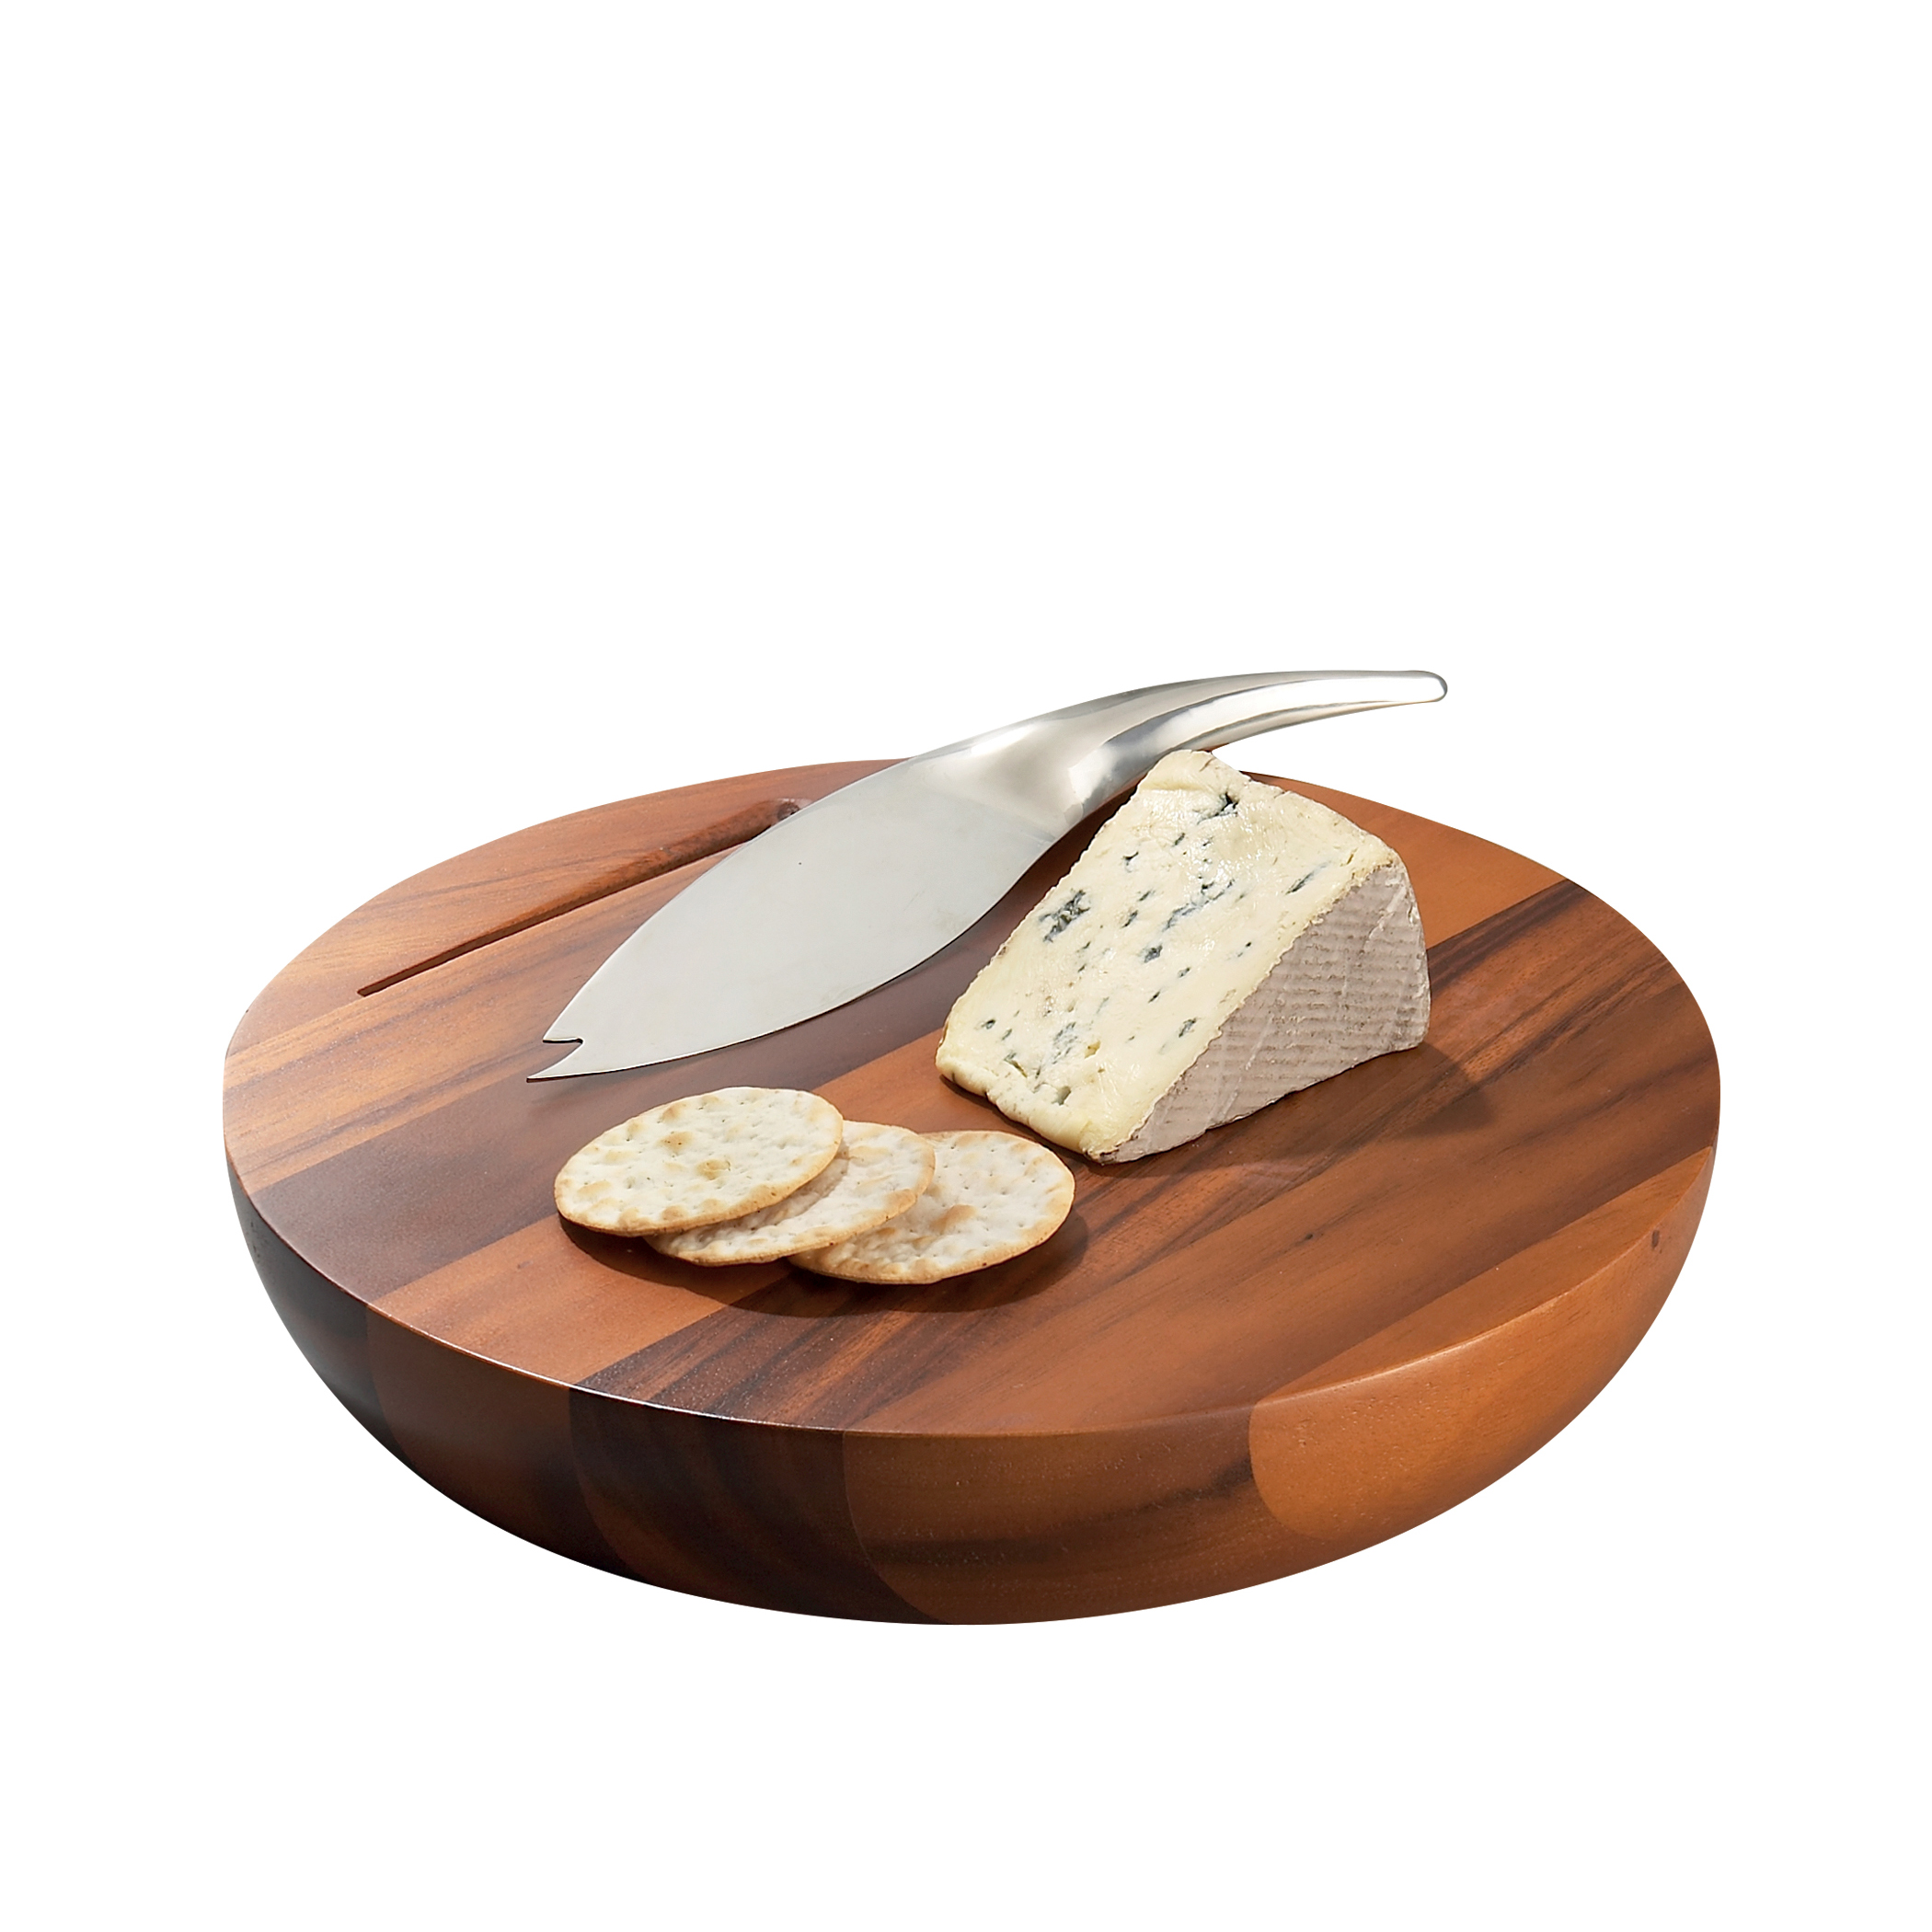 Harmony Cheese Board w/ Knife image number 1